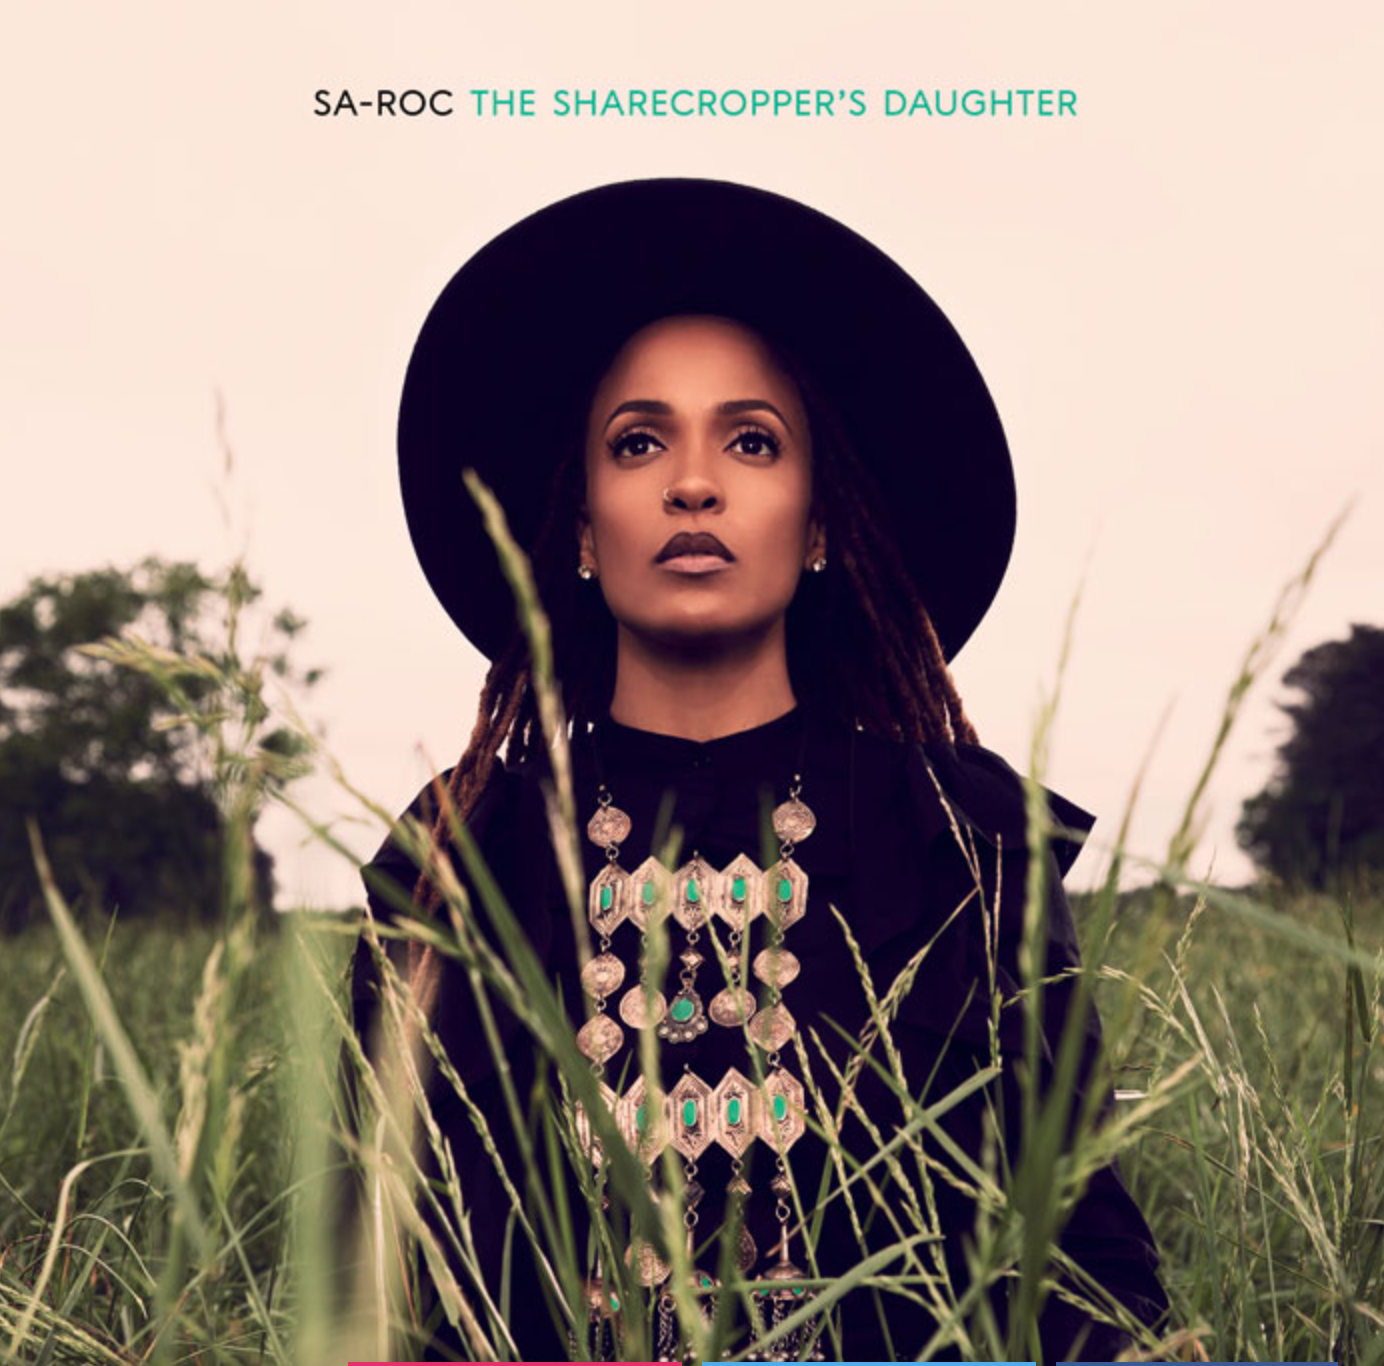 New Sa-Roc Album 'The Sharecropper's Daughter' Out Now on Rhymesayers Ent.